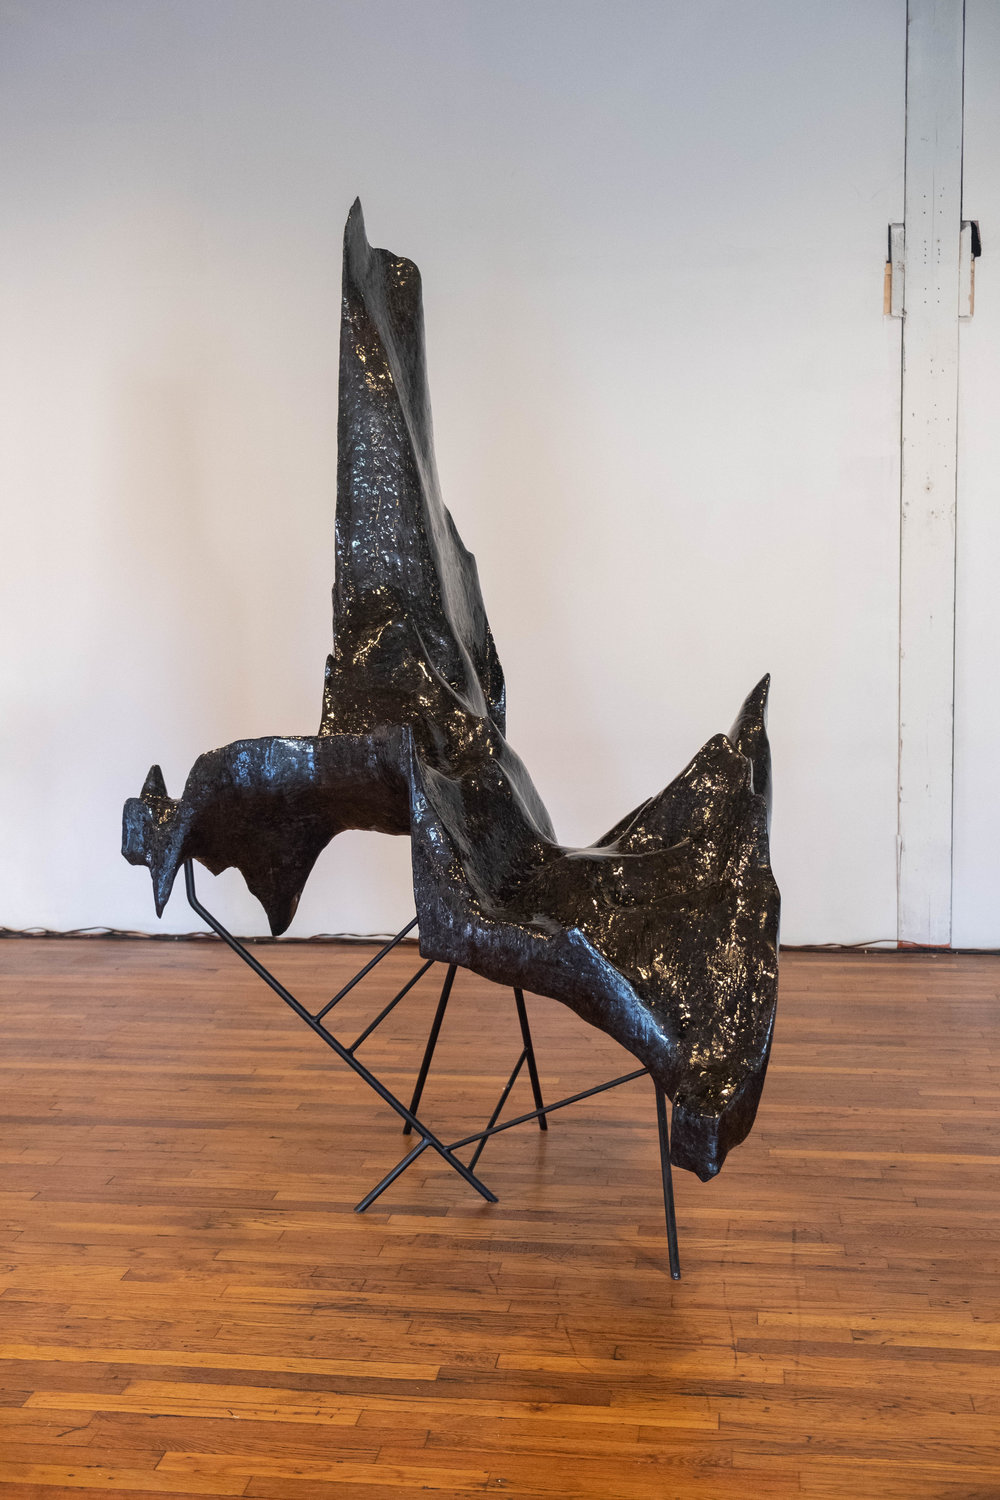 Installation of: Greg Pond,  Intensive Extension  (2018) in  Melt My Heart But Spare My Soul . Image by Sarah-Anne Wagoner. Courtesy of Stove Works.